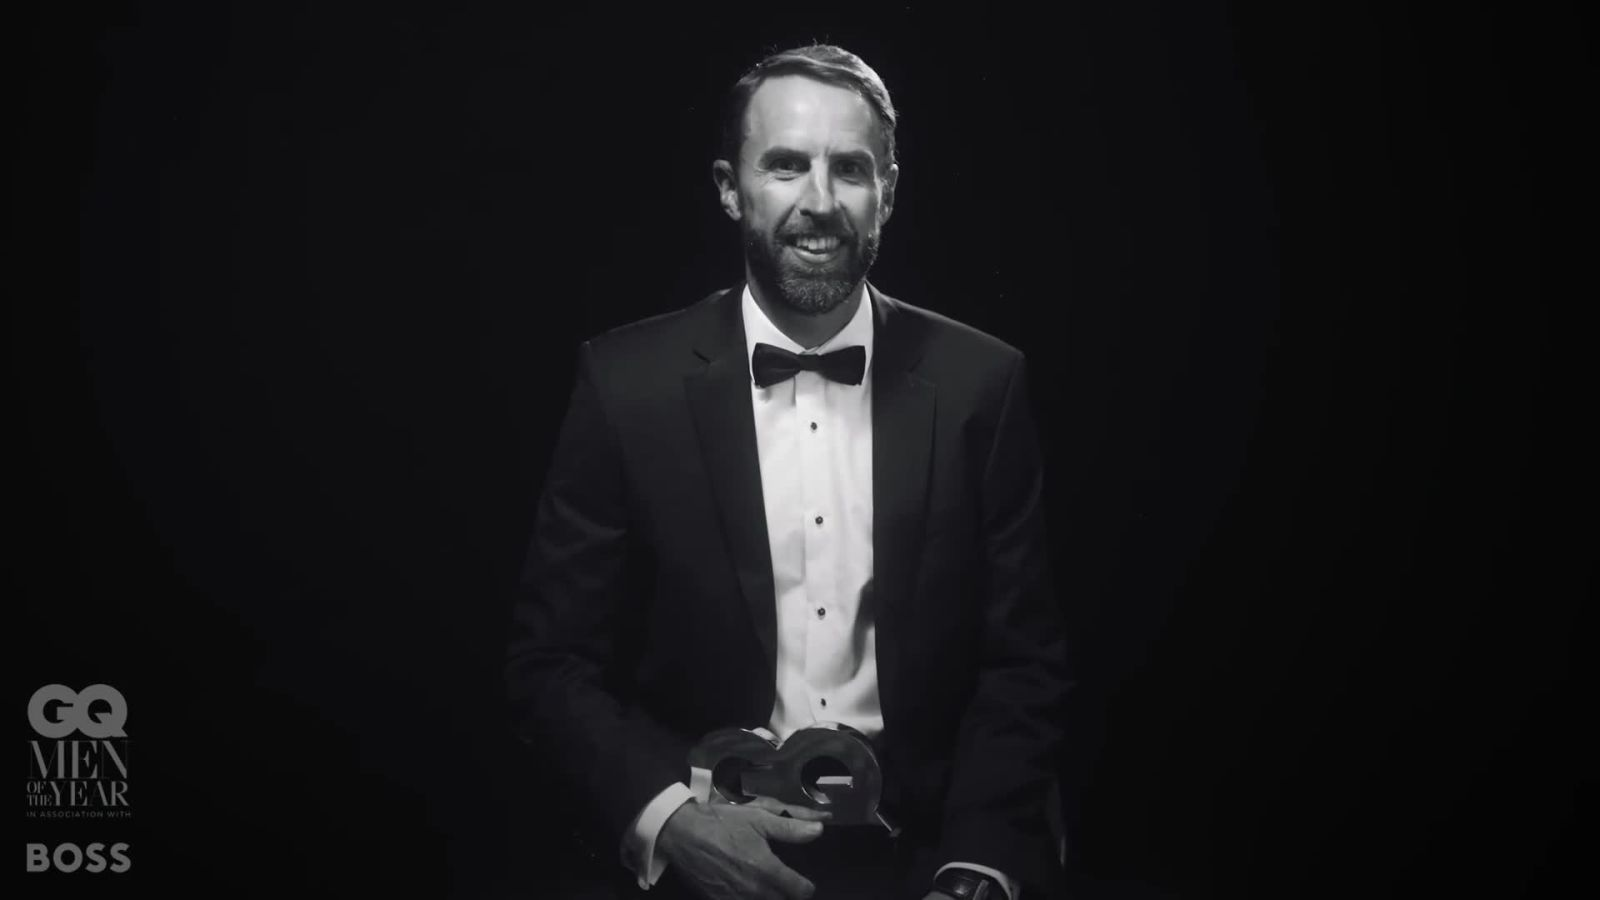 Gareth Southgate: 'The England team stood for a lot more than just the football on the pitch'